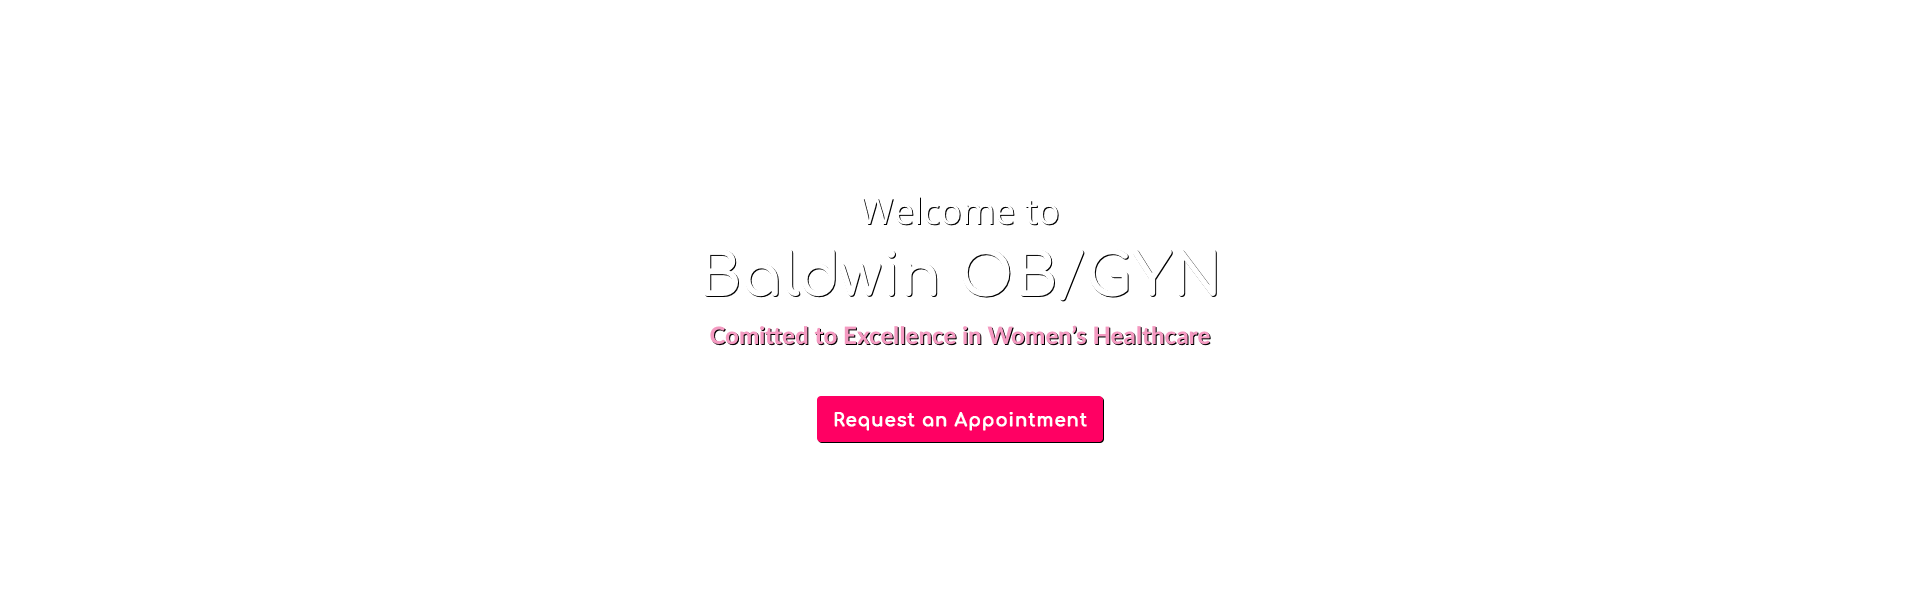 Welcome to Baldwin OB/GYN - committed to excellence in women's healthcare.